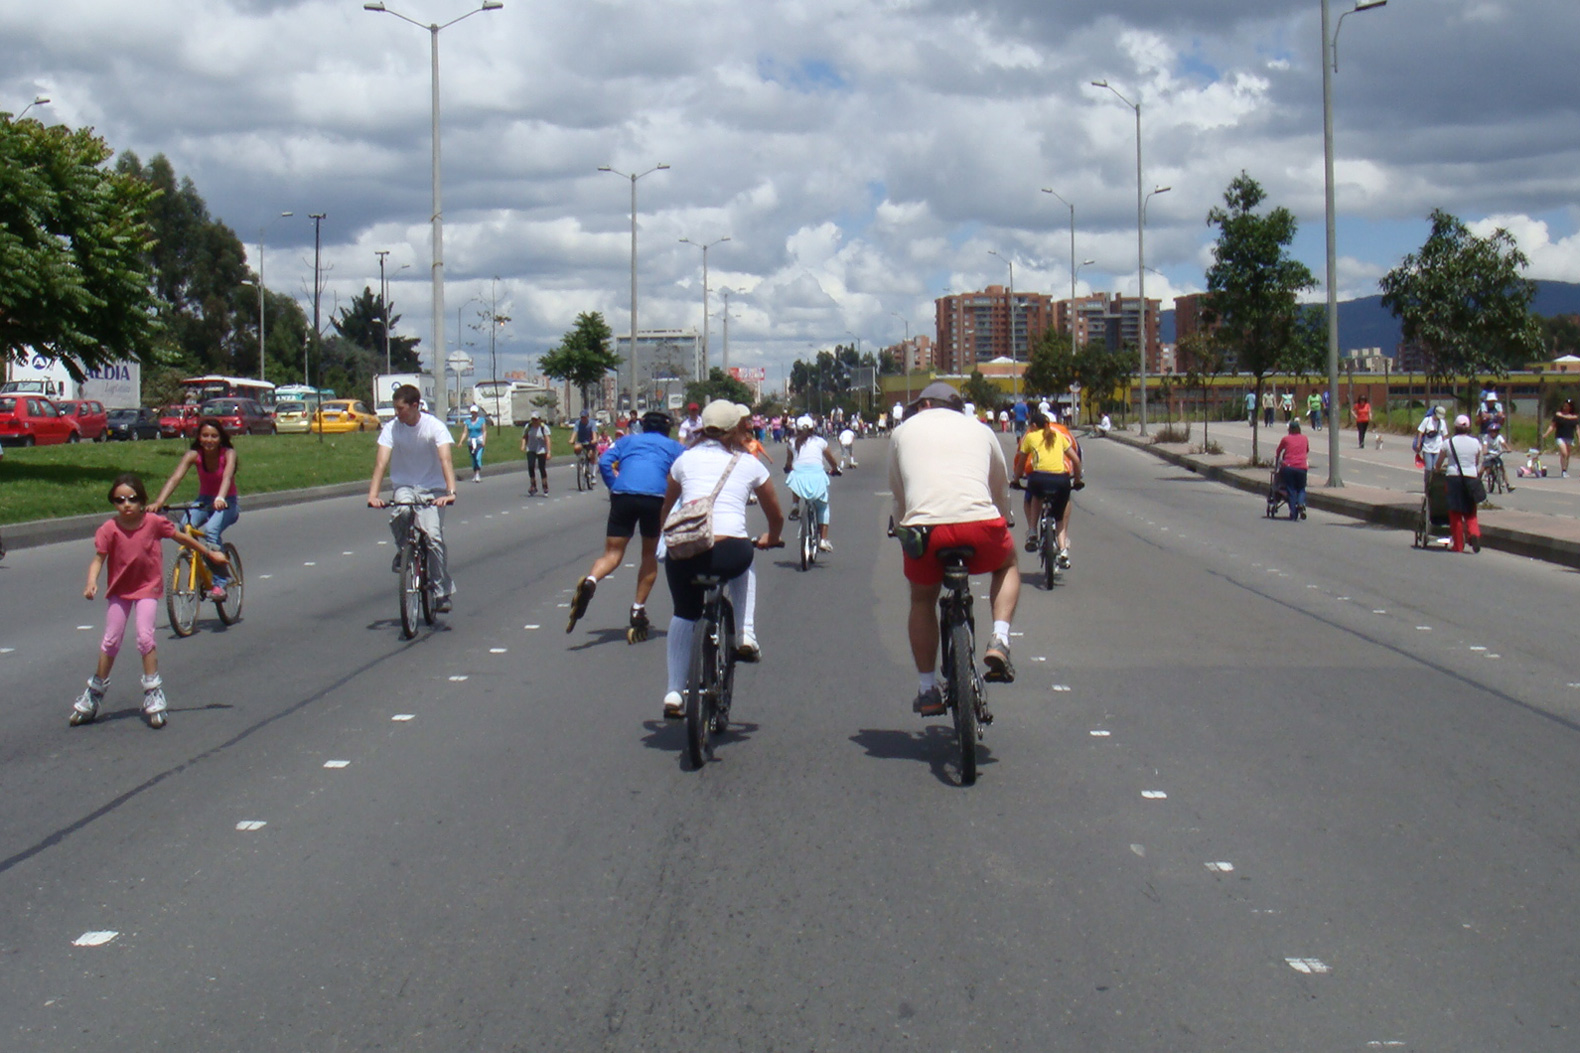 Car-free Sundays are the norm in Colombia's capital city, Bogotá